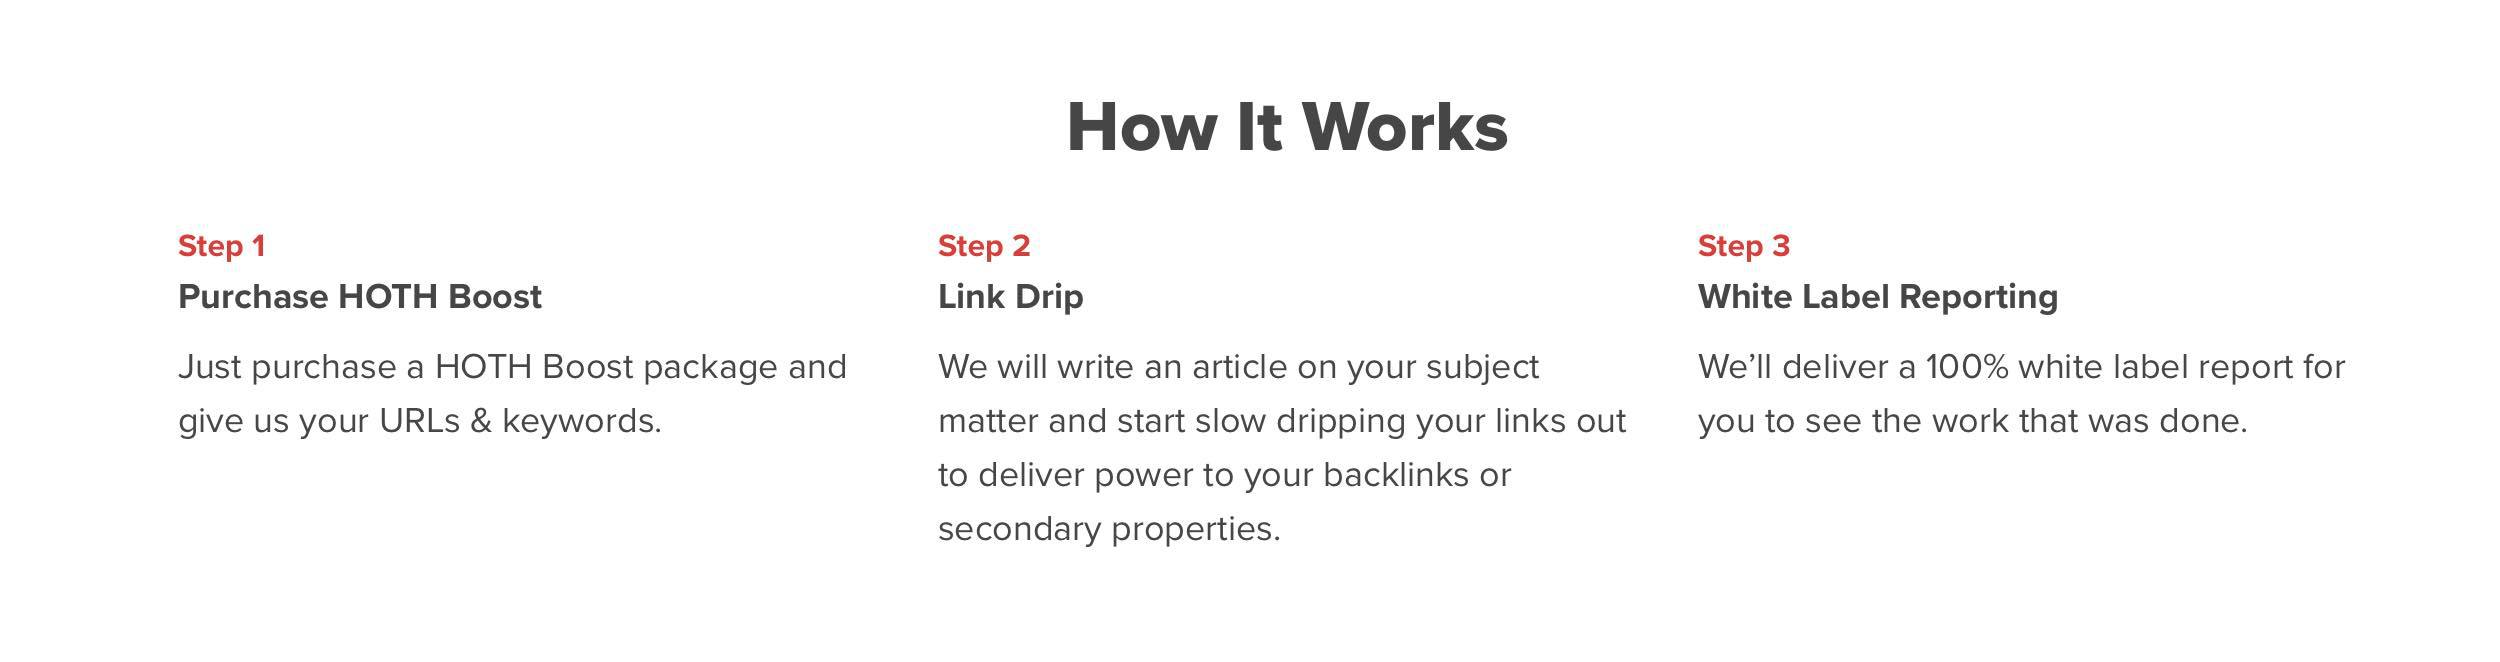 Boost up your backlinks with The HOTH